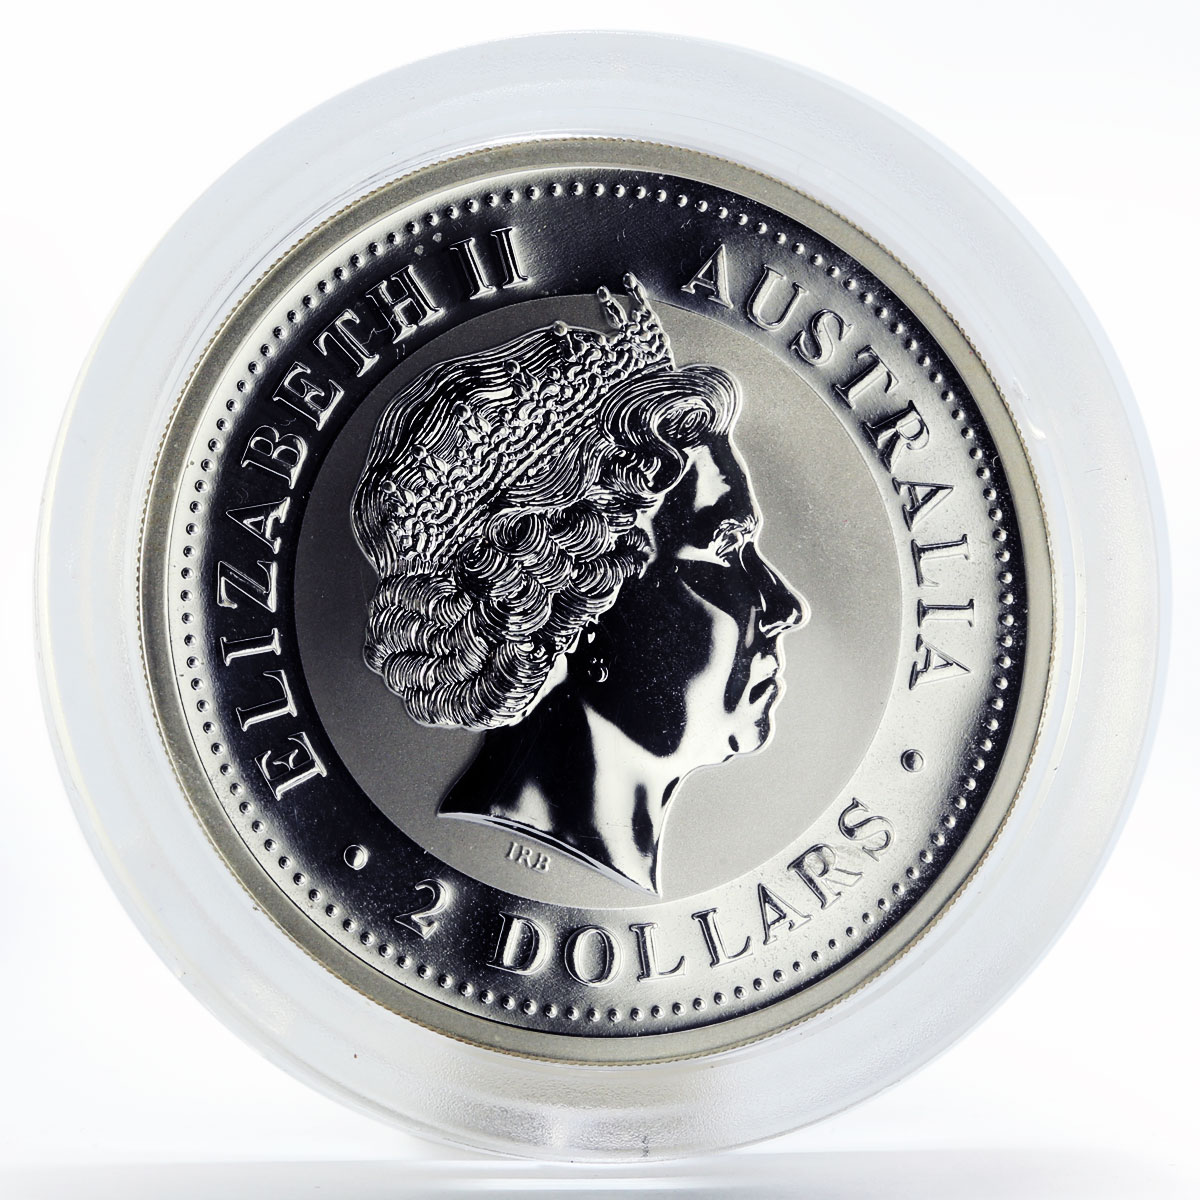 Australia 2 dollars Year of the Monkey Lunar Series I 2 oz silver coin 2004